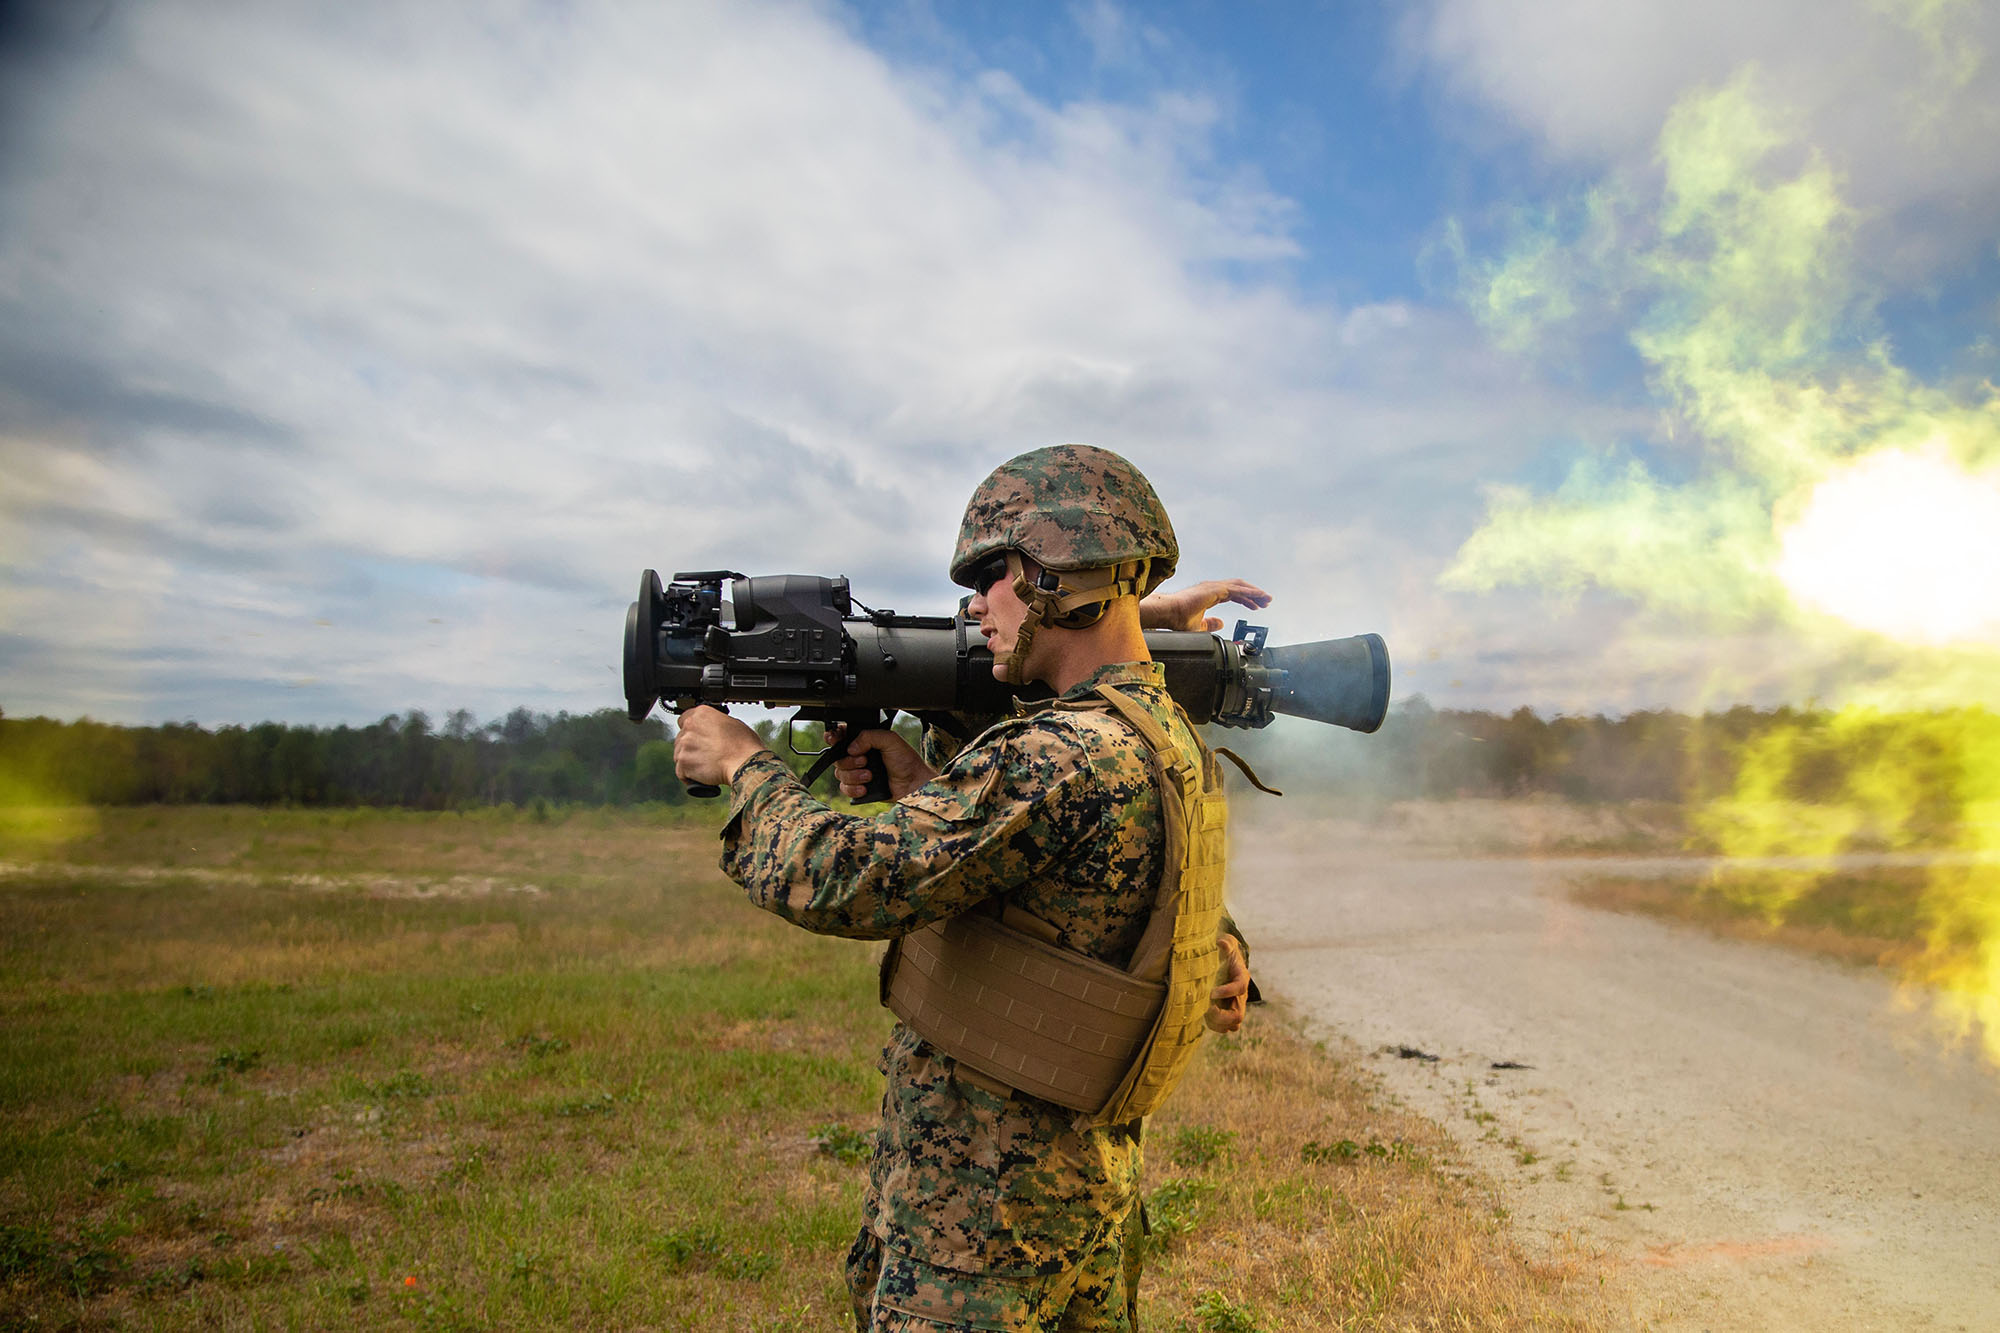 U.S. Marine Corps Cpl. Andrew Ritchie uses the M3E1 Multi-purpose Anti-armor Anti-personnel Weapon System to engage targets during a live-fire training on Camp Lejeune, N.C., May 6, 2021. (Lance Cpl. Emma L. Gray/Marine Corps)